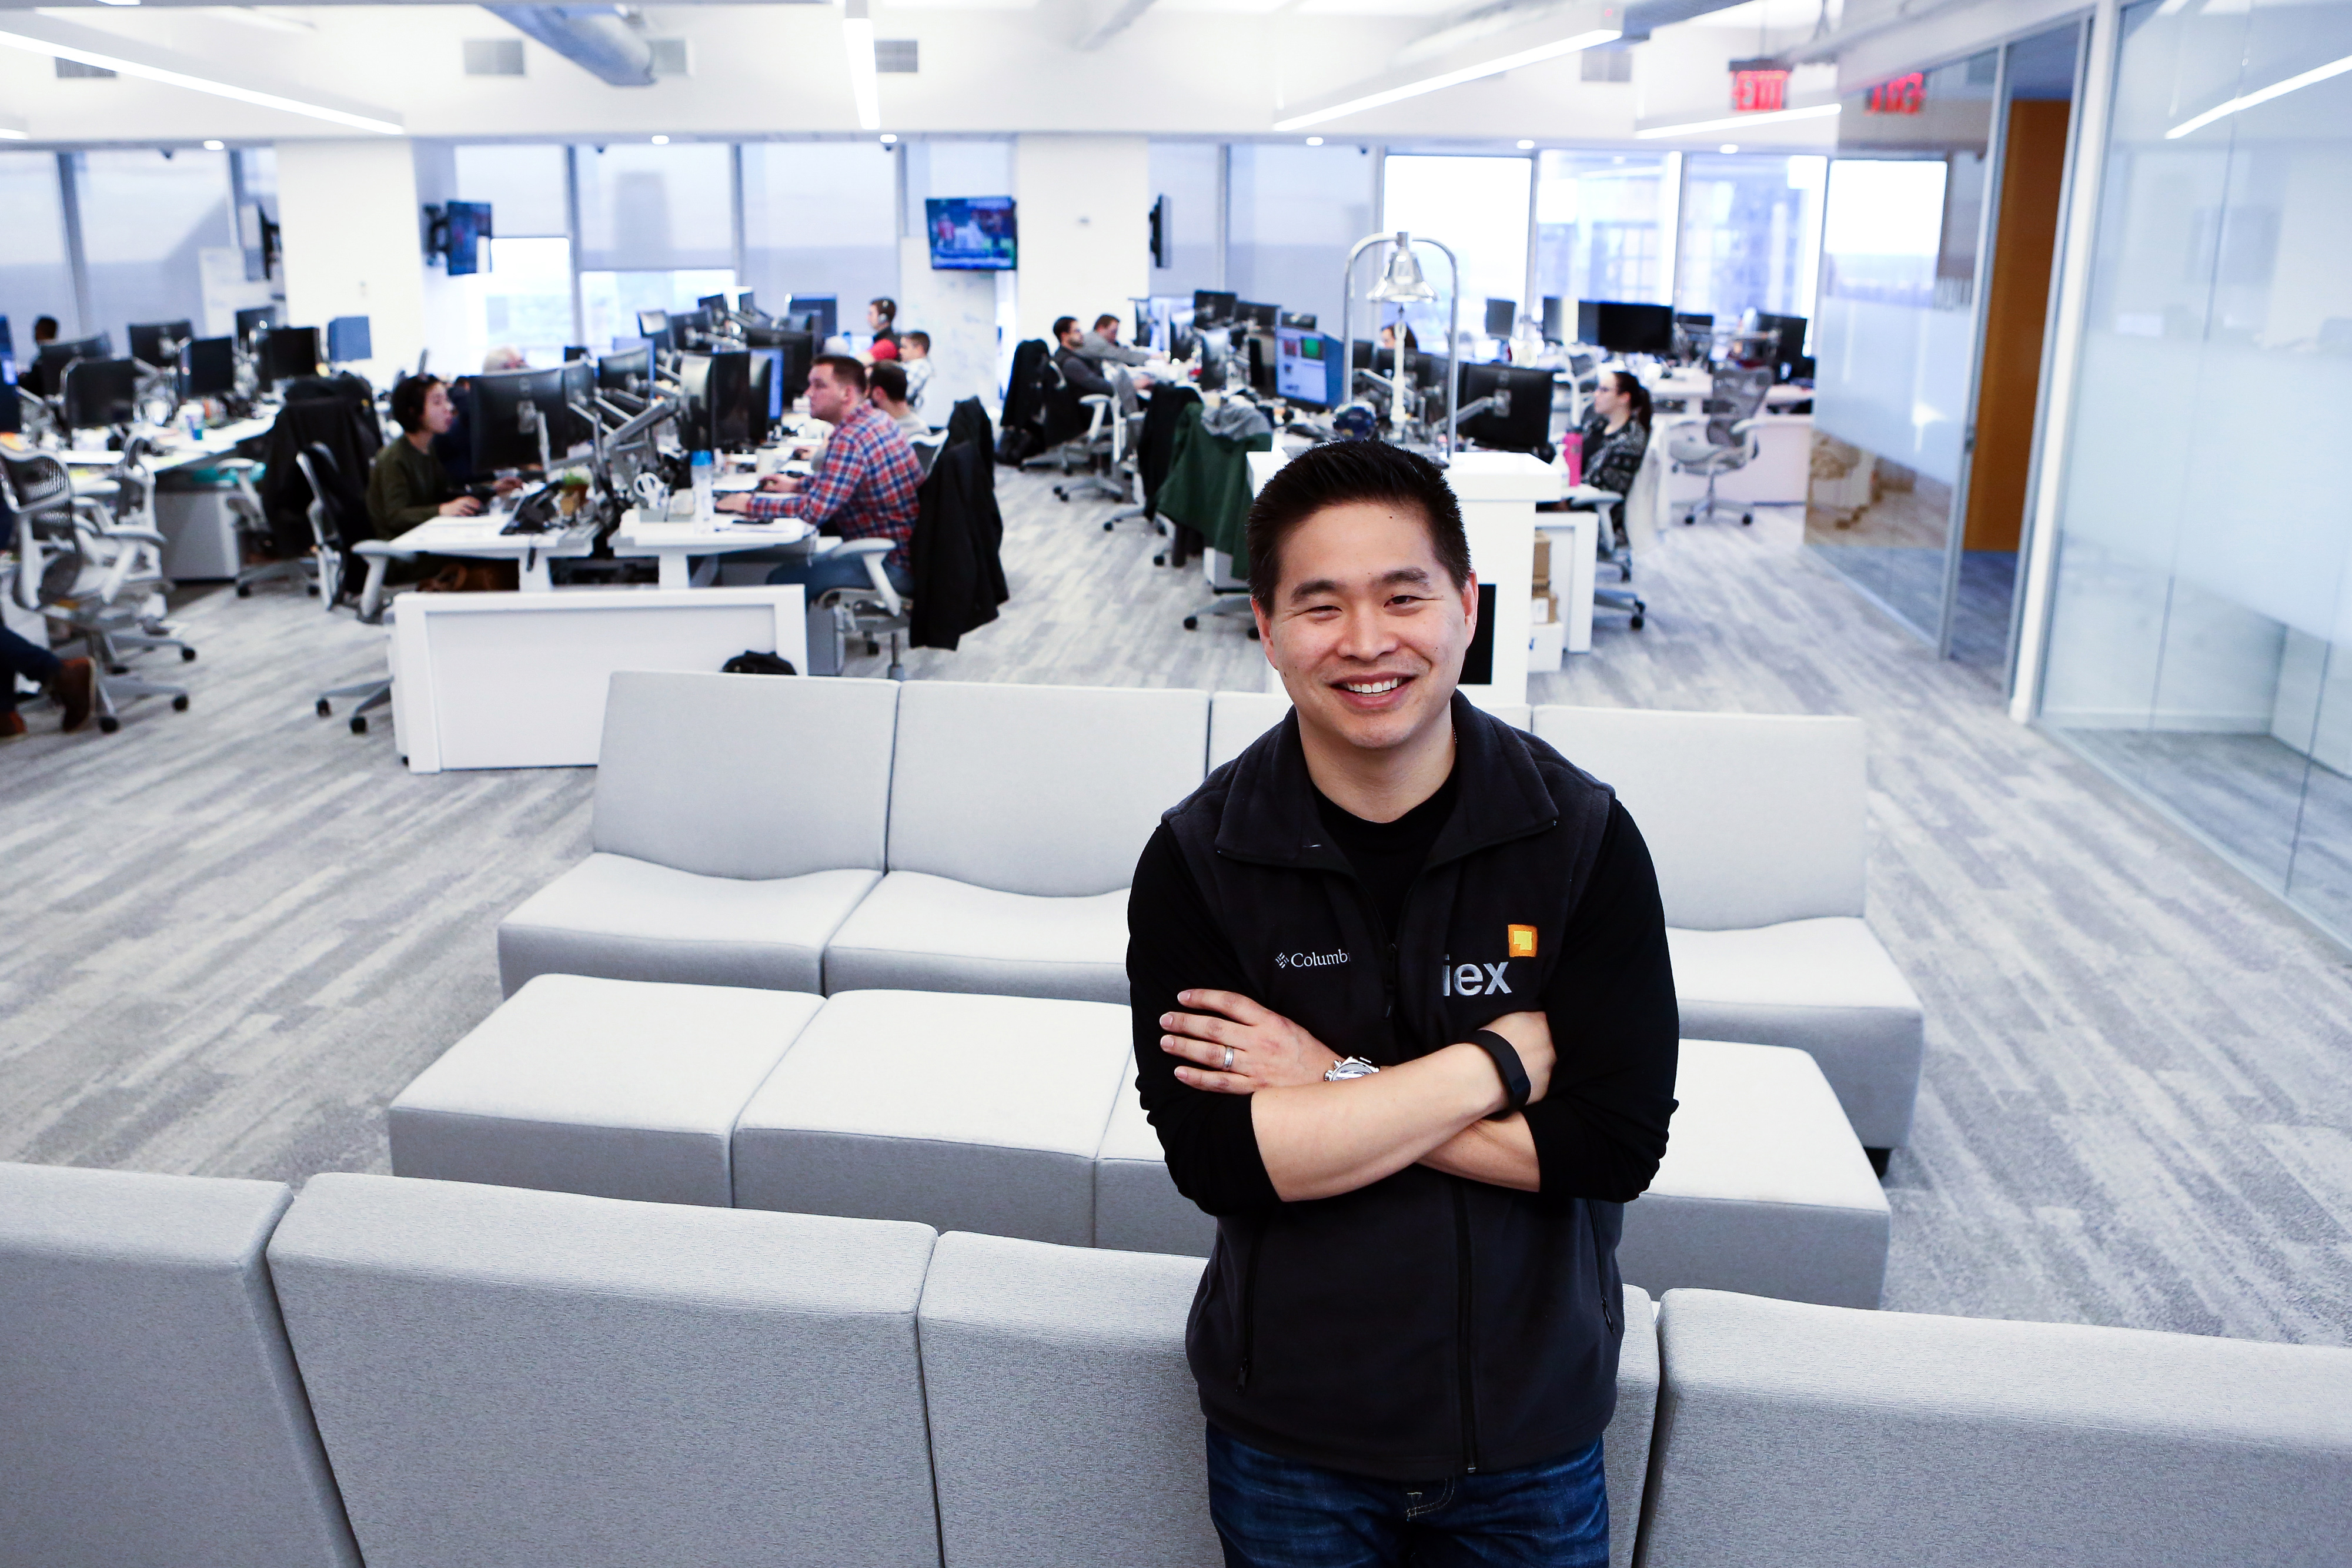 Inside The IEX Group Inc. Office As Their Exchange Application Faces Delay